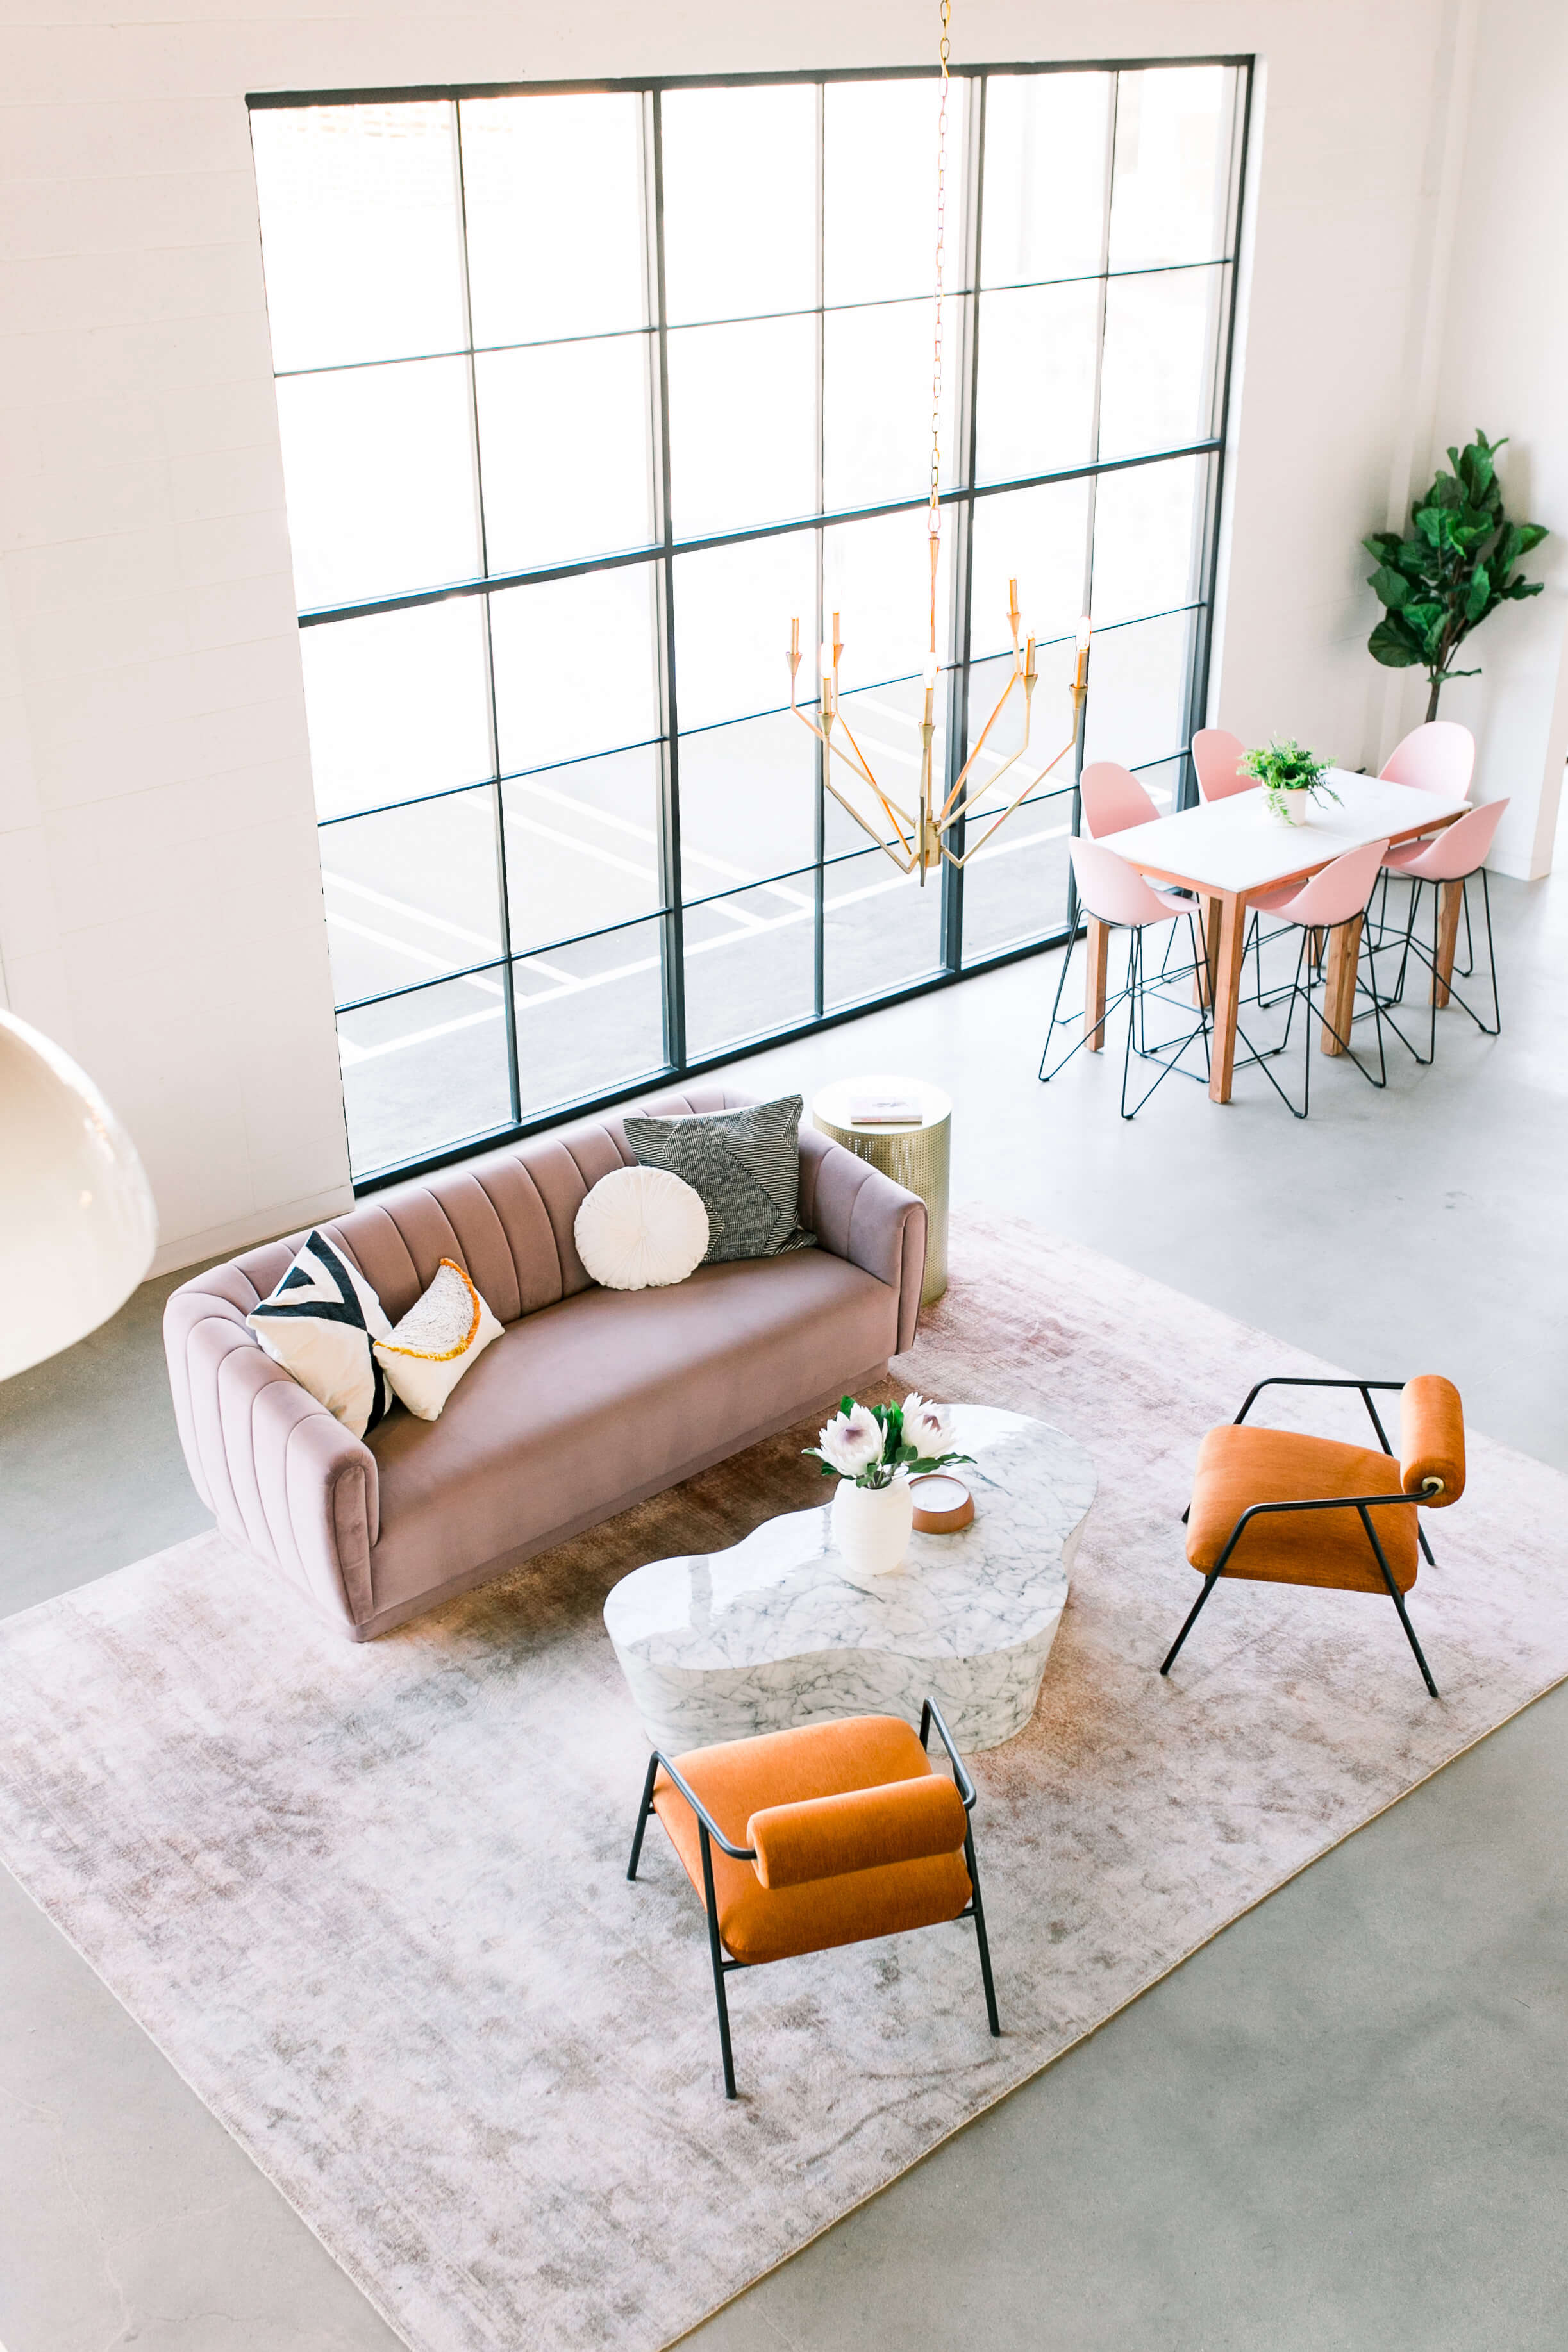 GINNY_MACDONALD_CREATE_CULTIVATE_OFFICE_LOBBY